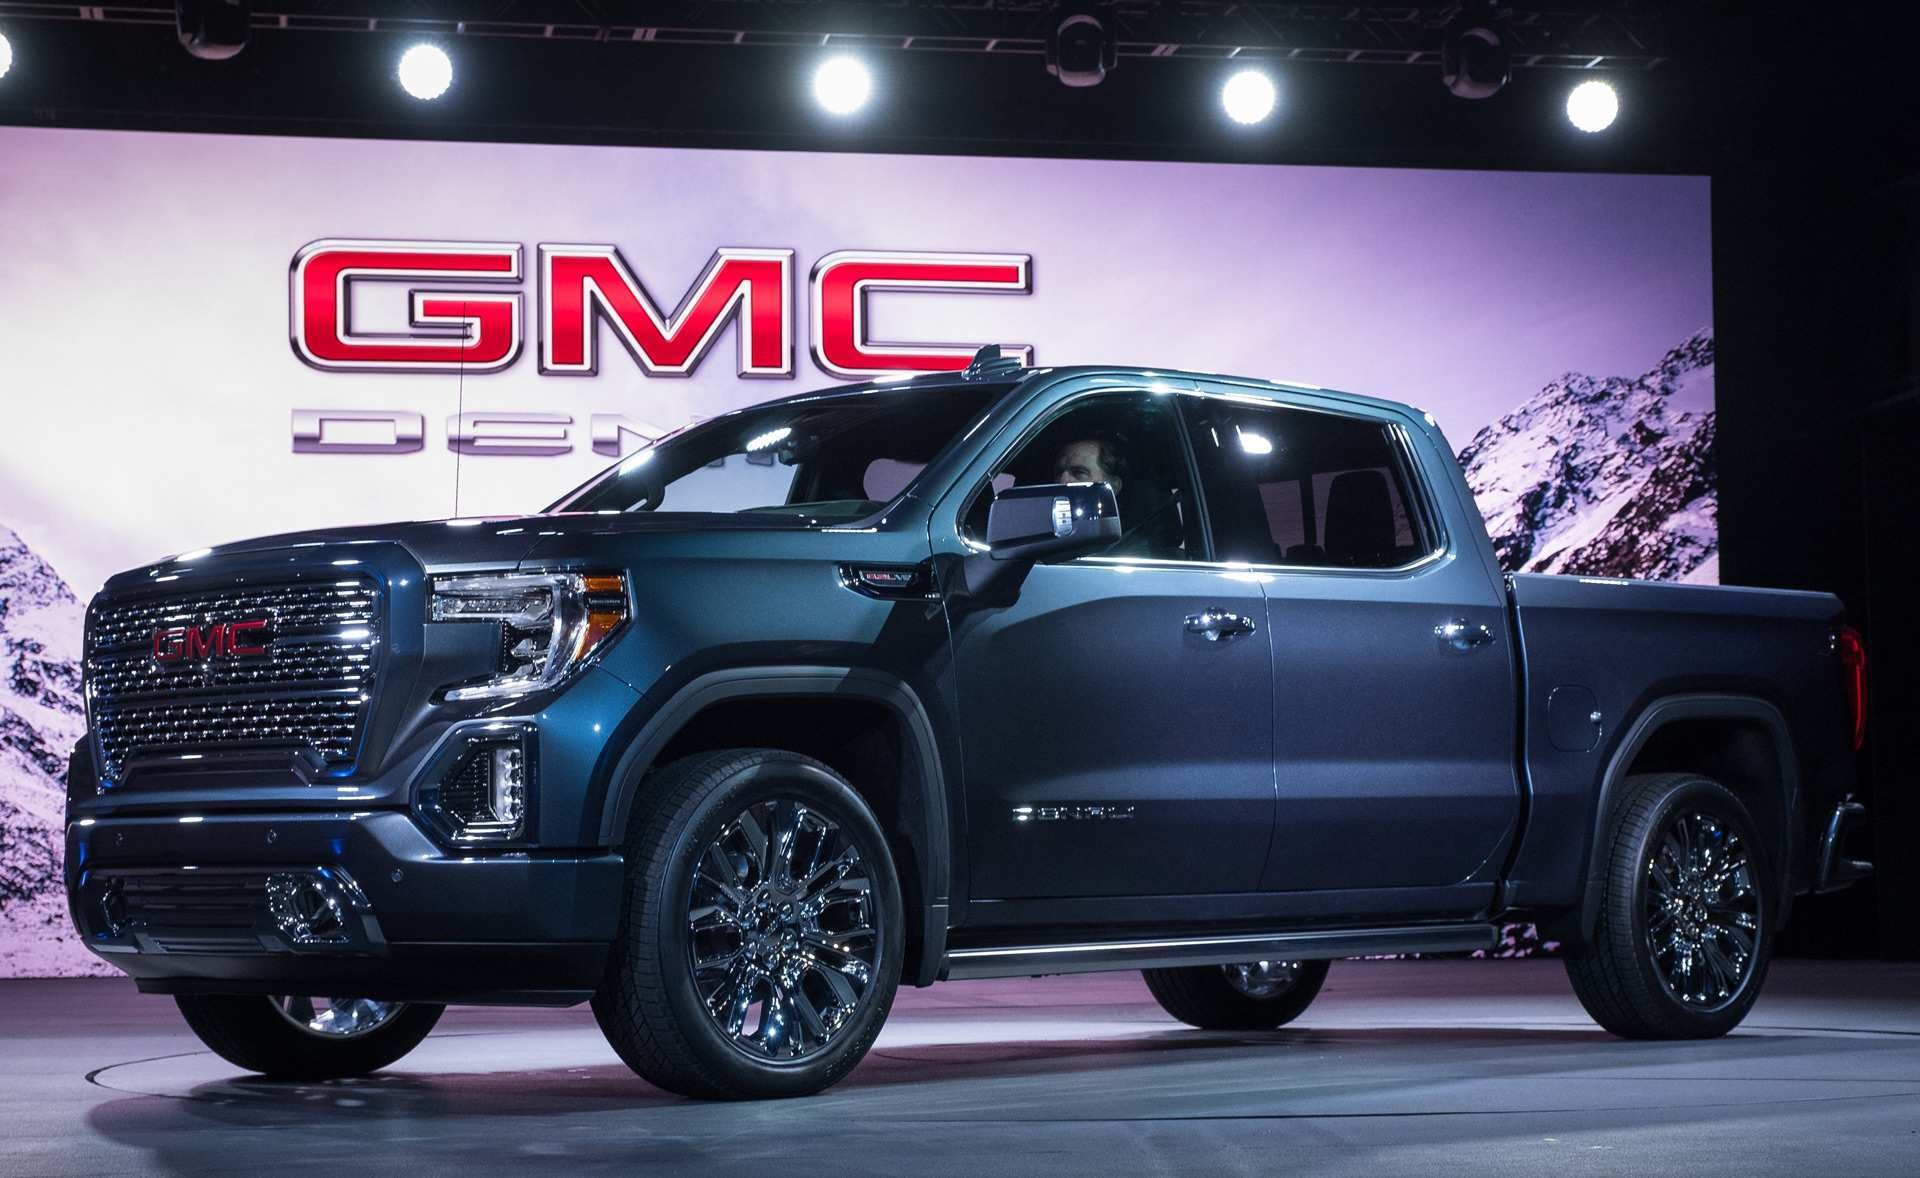 33 Concept of 2020 Gmc Denali Ultimate Exterior and Interior for 2020 Gmc Denali Ultimate